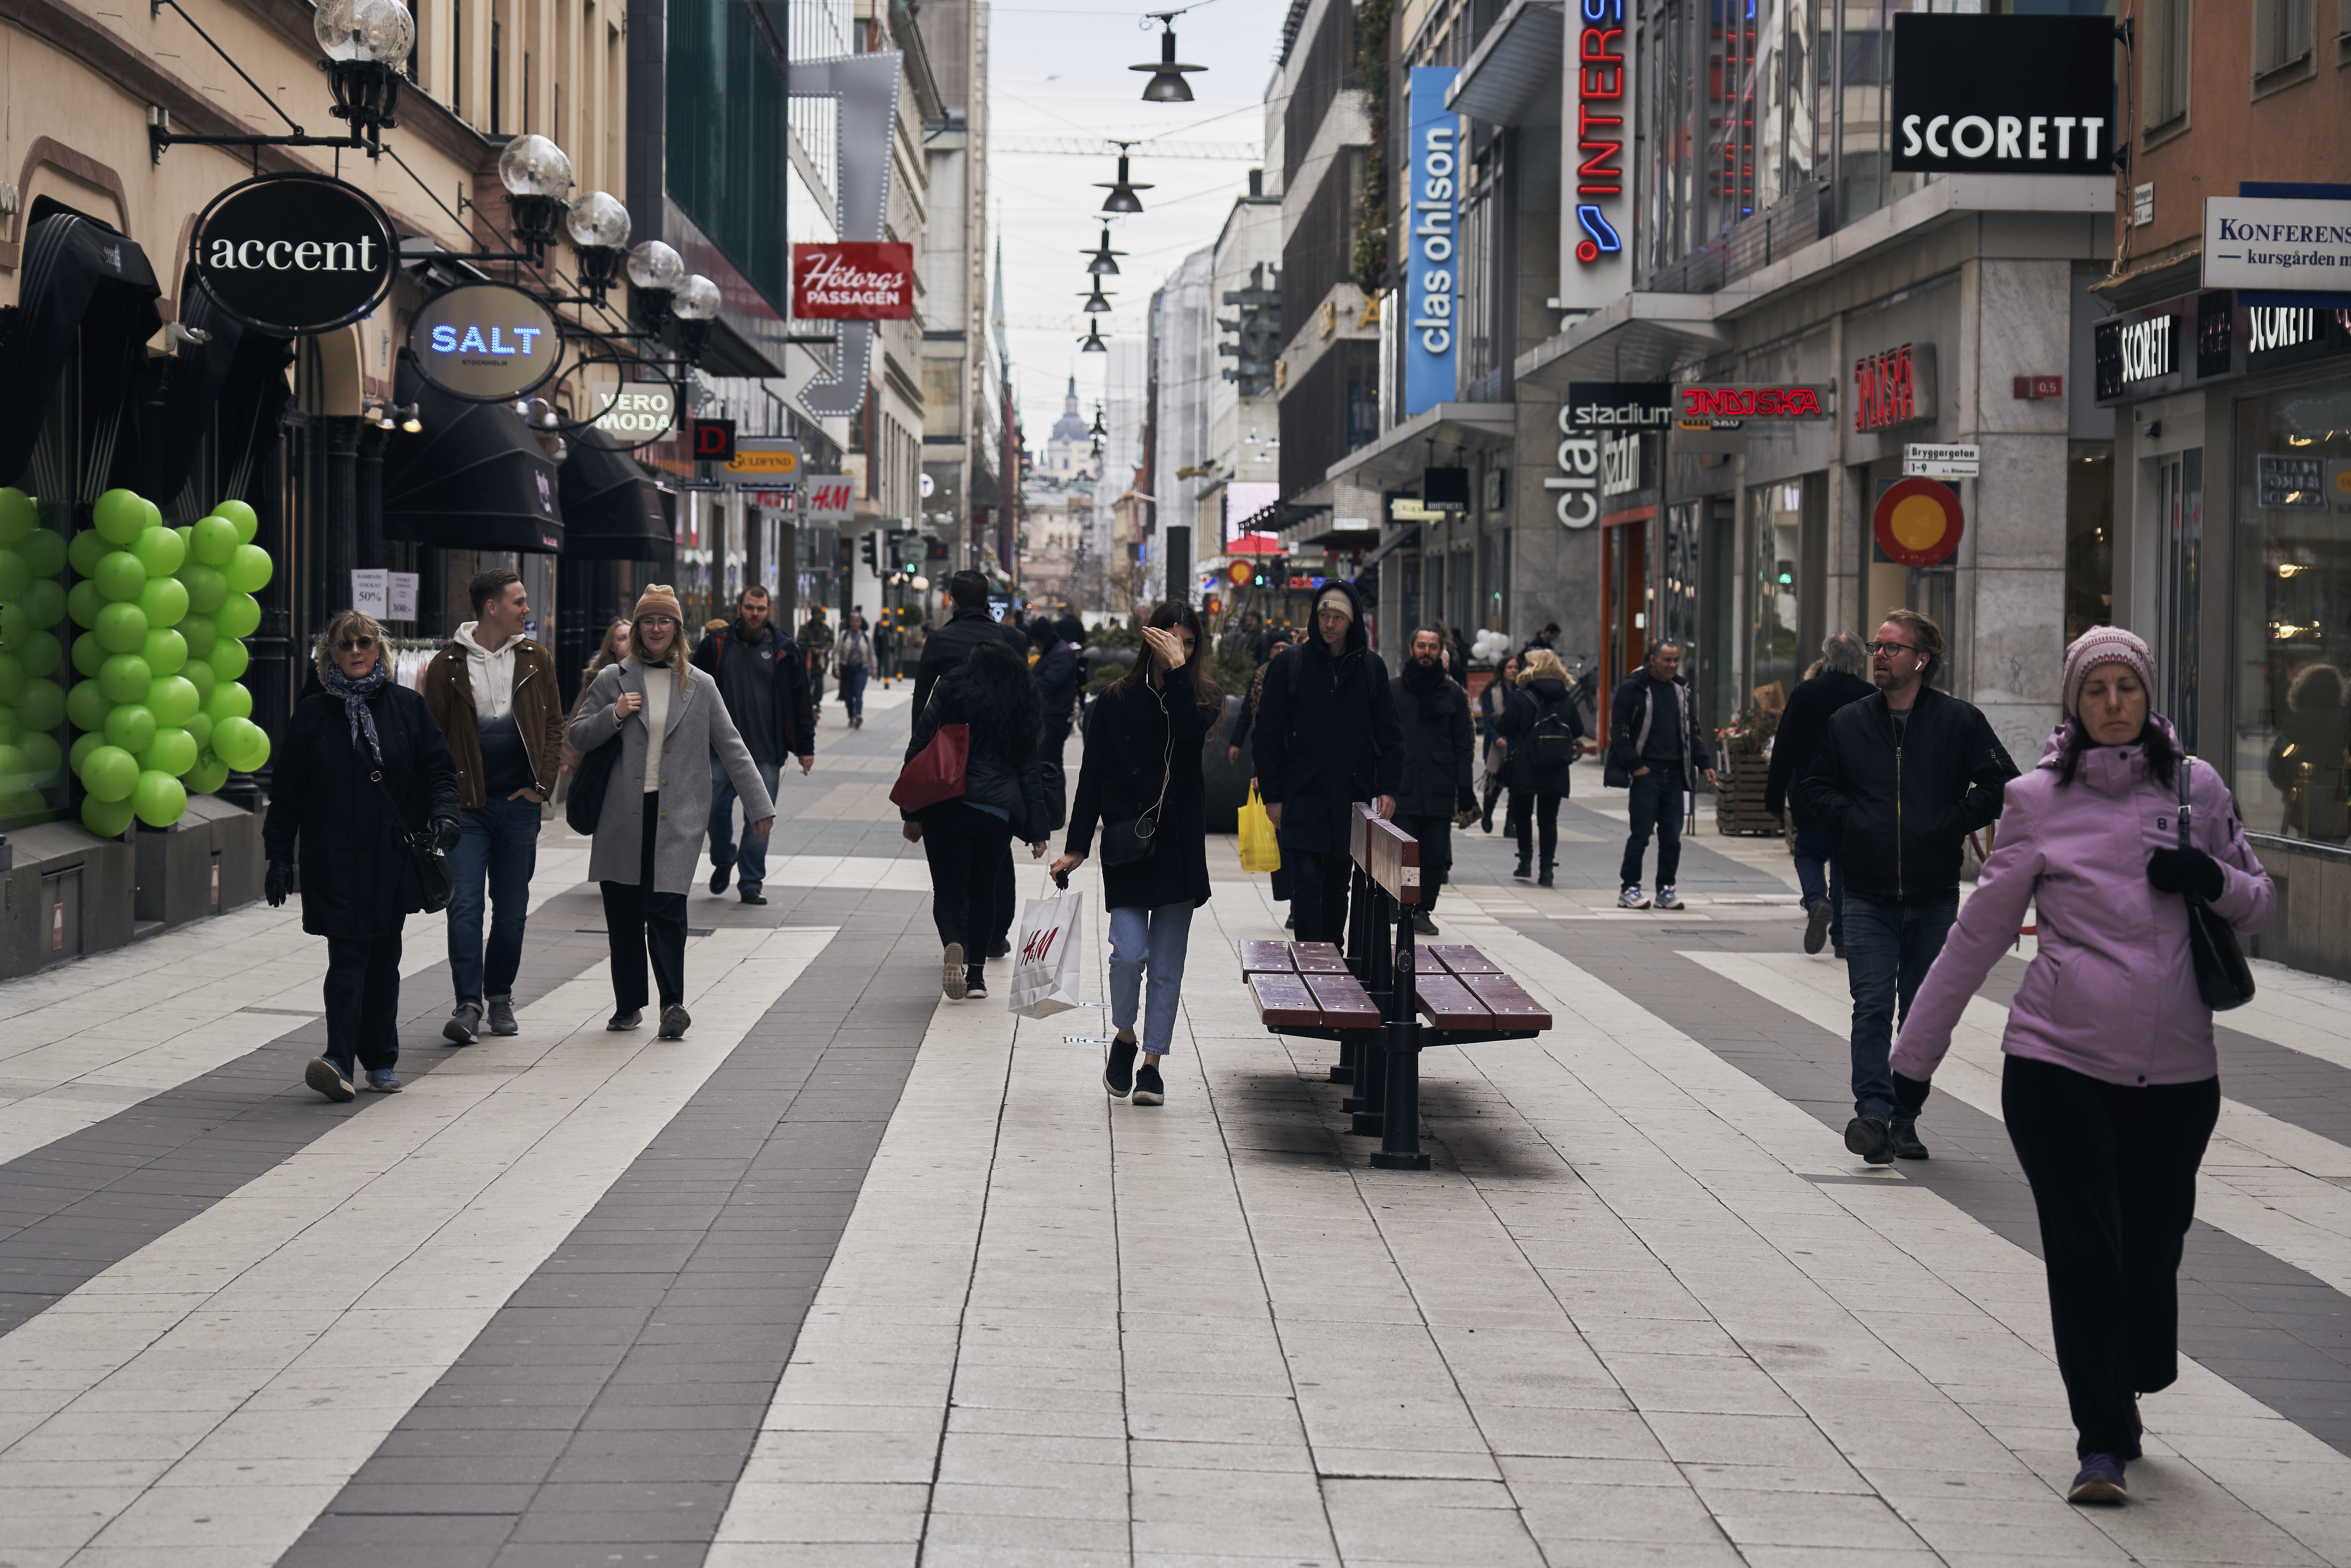 People walk along the main pedestrian shopping street in Stockholm on Wednesday